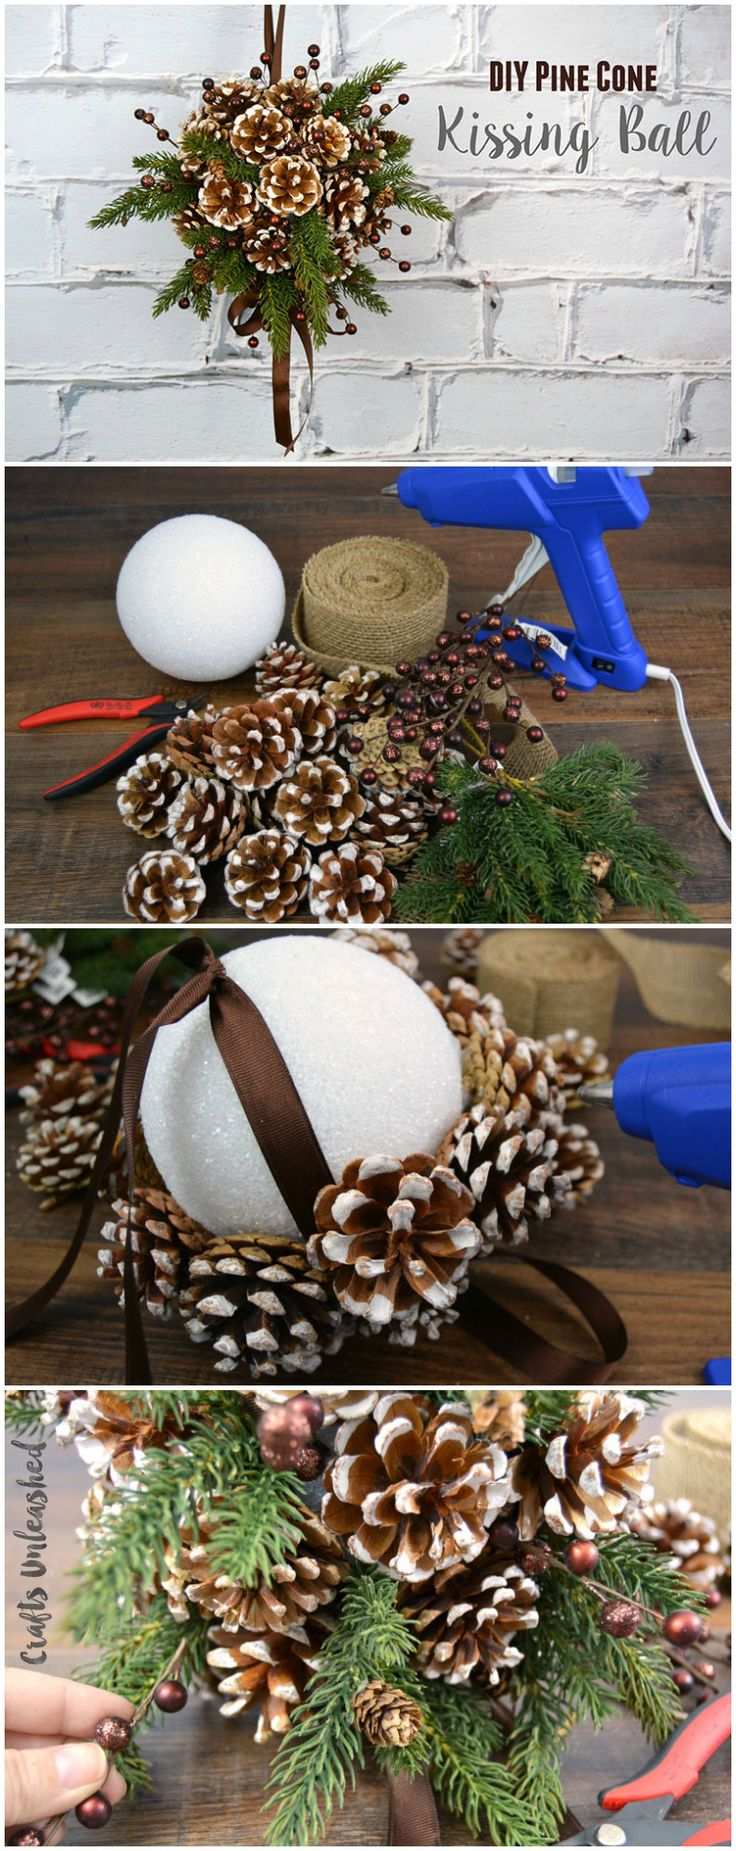 Need an alternative to the traditional winter wreath? This beautiful pine cone DIY kissing ba5ll is the perfect option - we'll show you how to make your own!